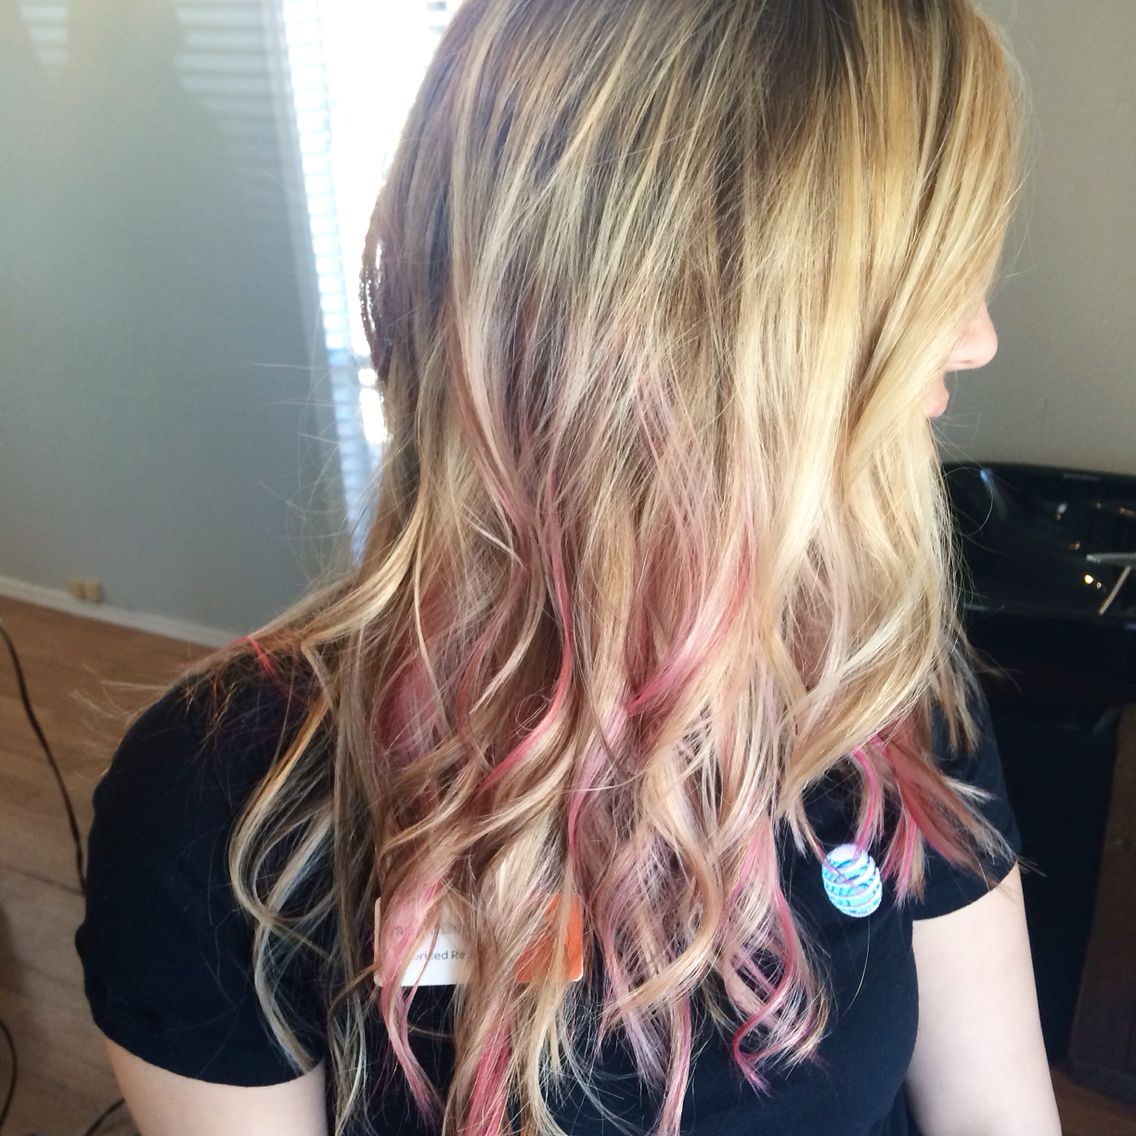 What You Should Wear To Blonde Hair With Pink Highlights Blonde